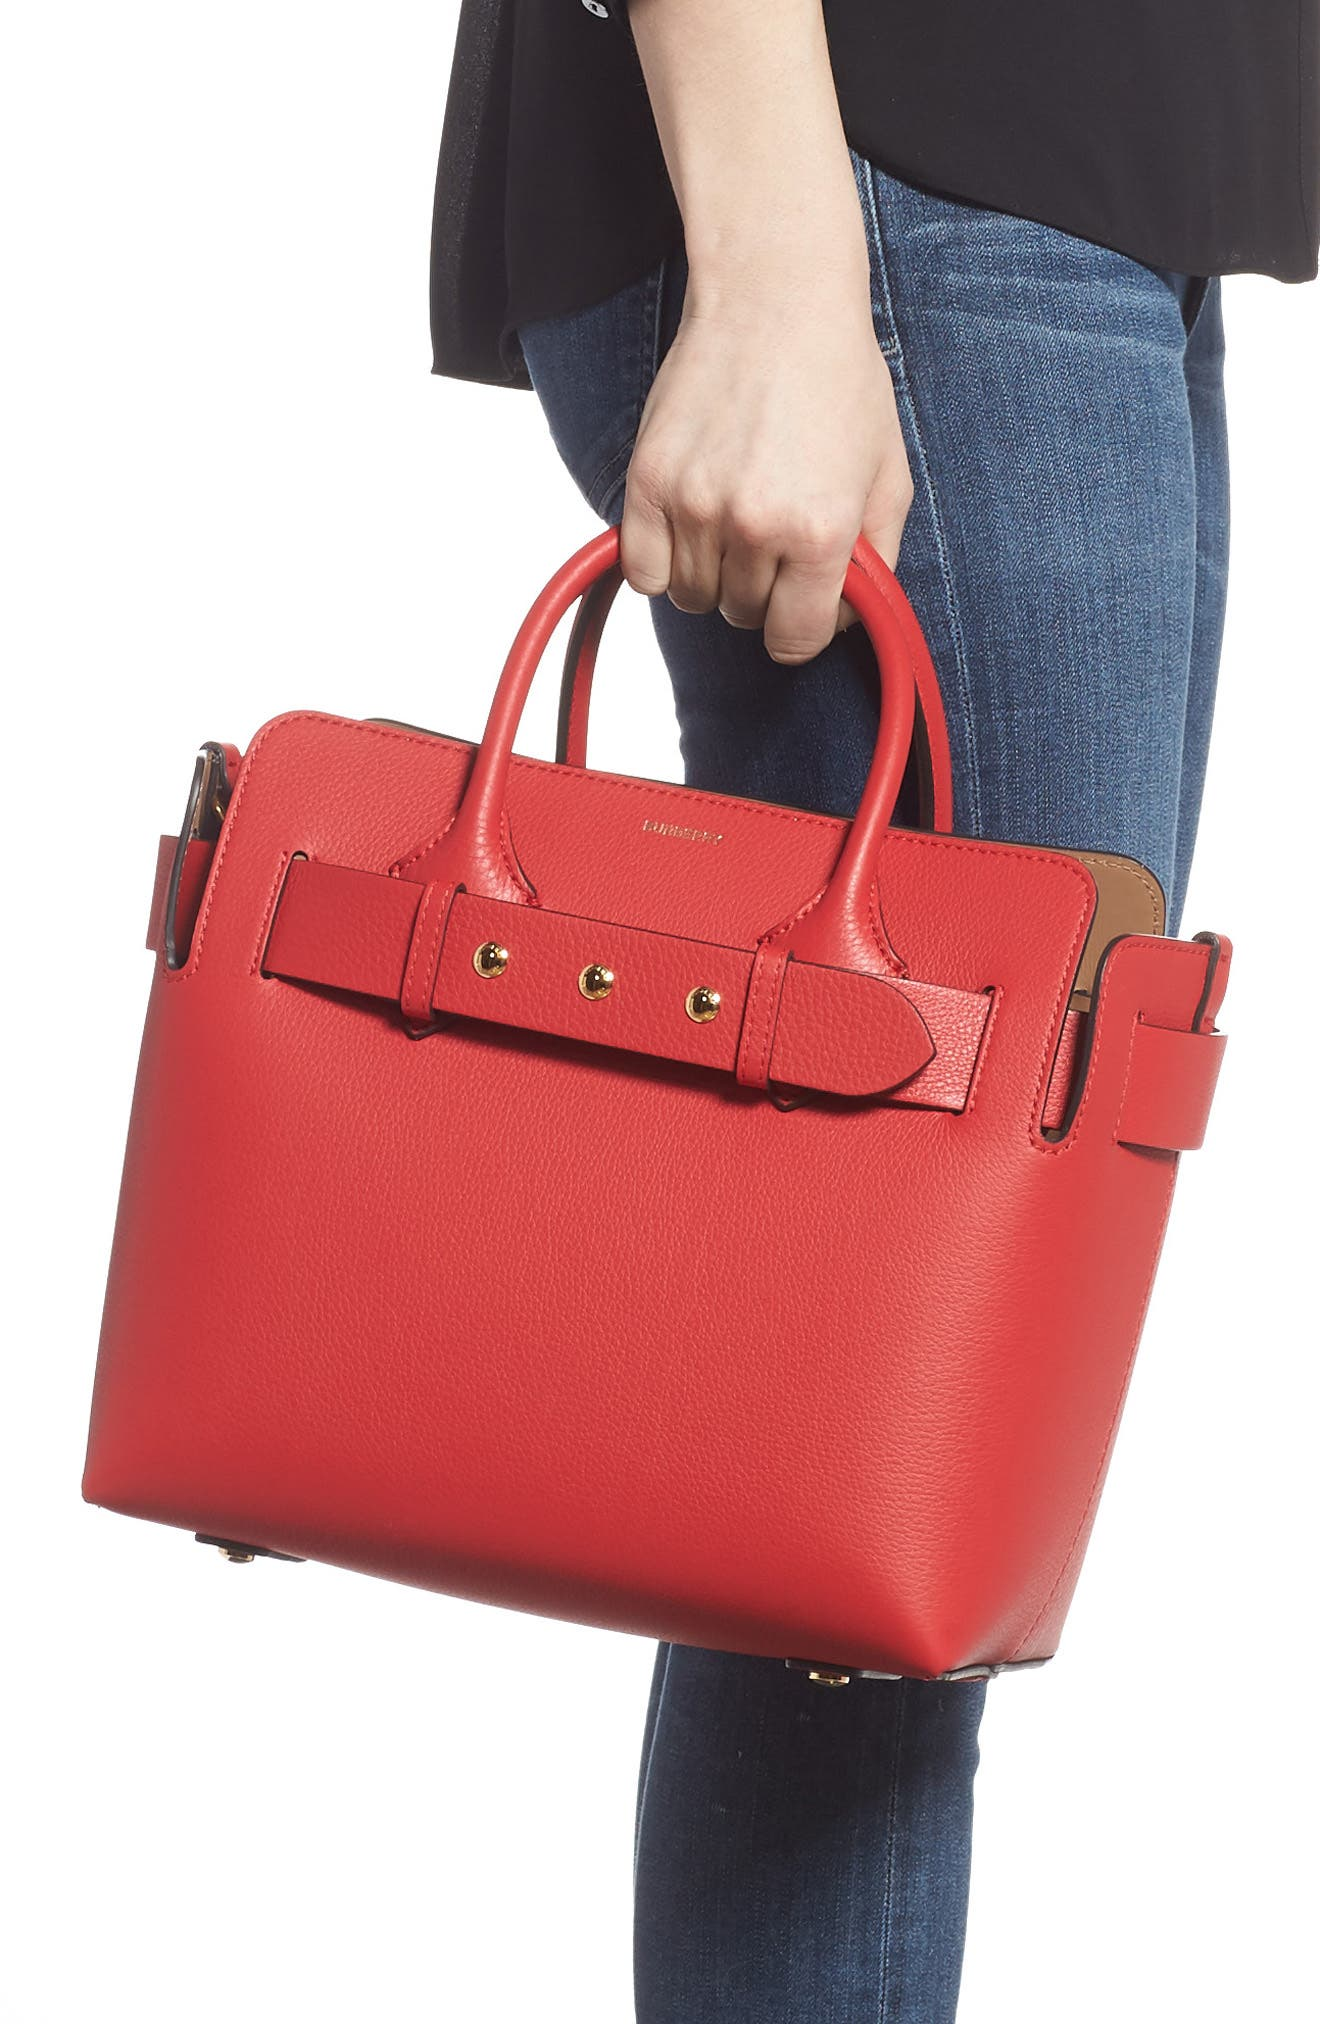 BURBERRY,                             Small Belt Leather Satchel,                             Alternate thumbnail 3, color,                             BRIGHT MILITARY RED